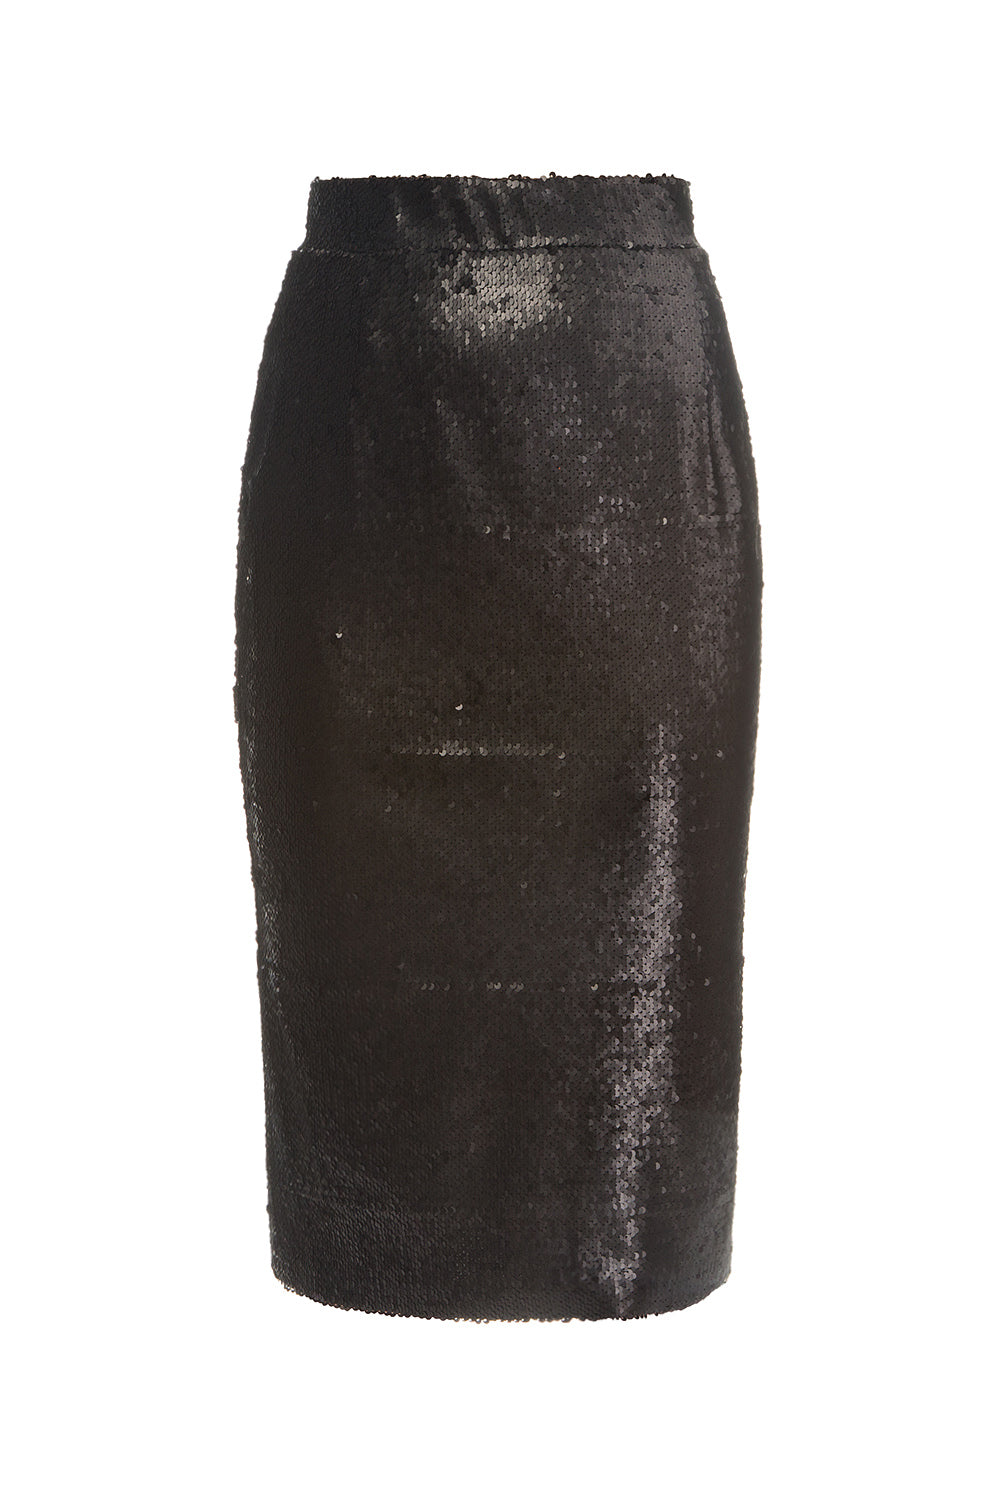 Black sequin pencil skirt